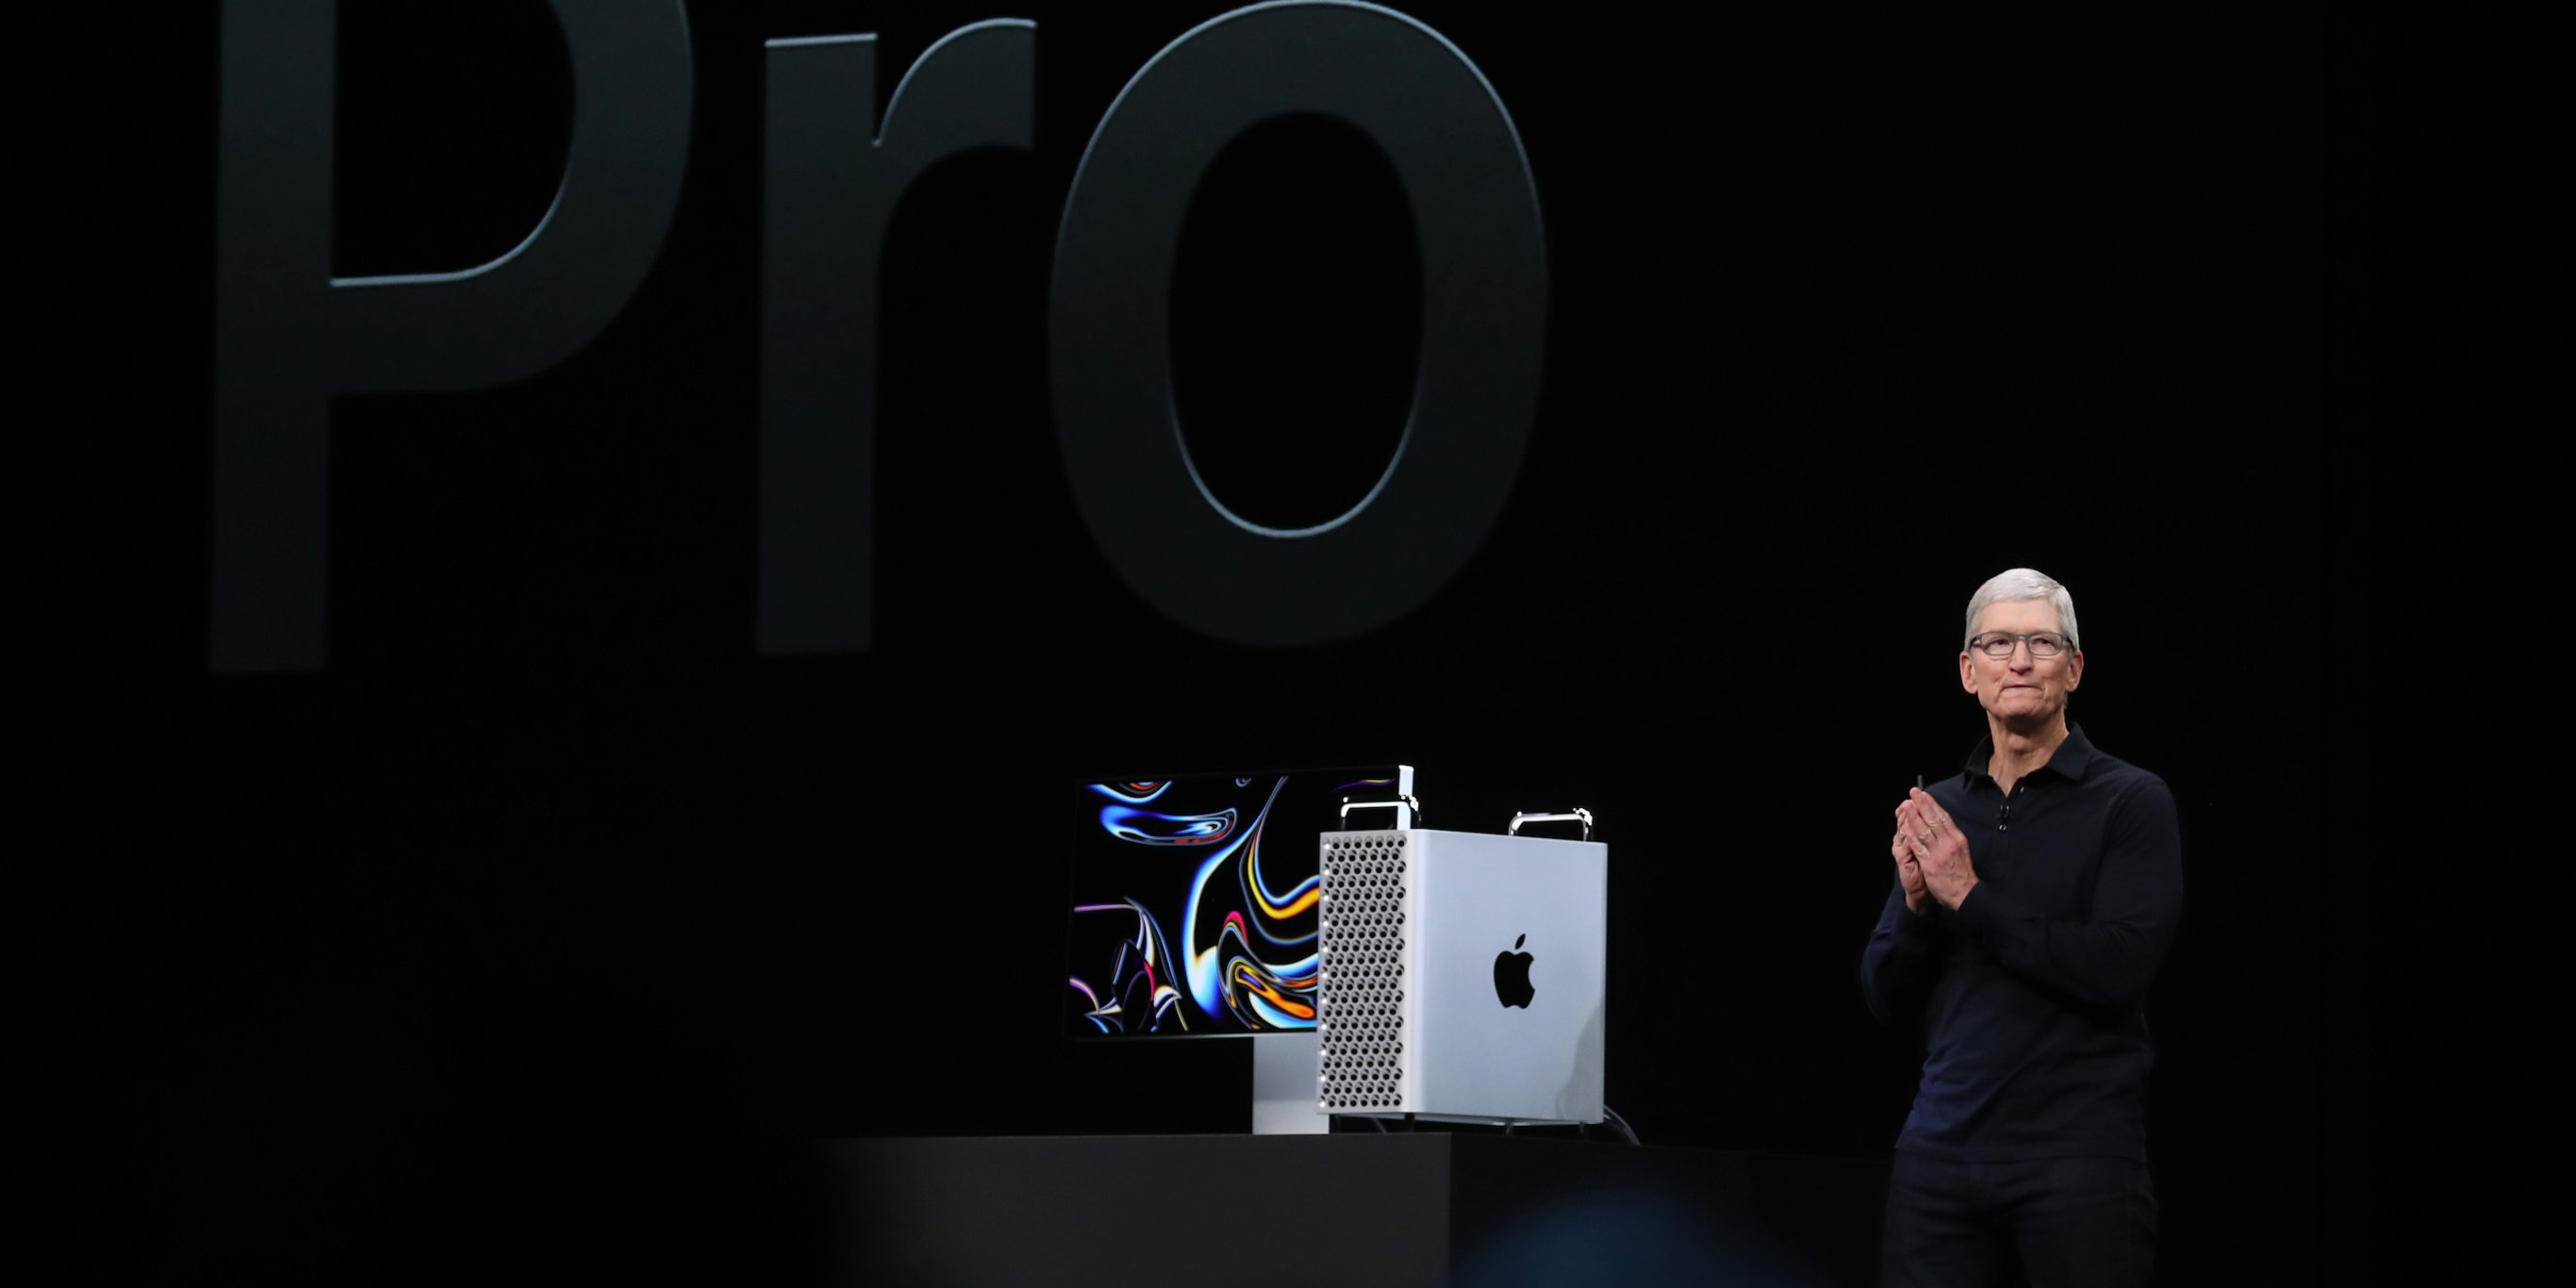 Apple says it will keep making the Mac Pro in Texas after reports suggested it was shifting production to China (AAPL)